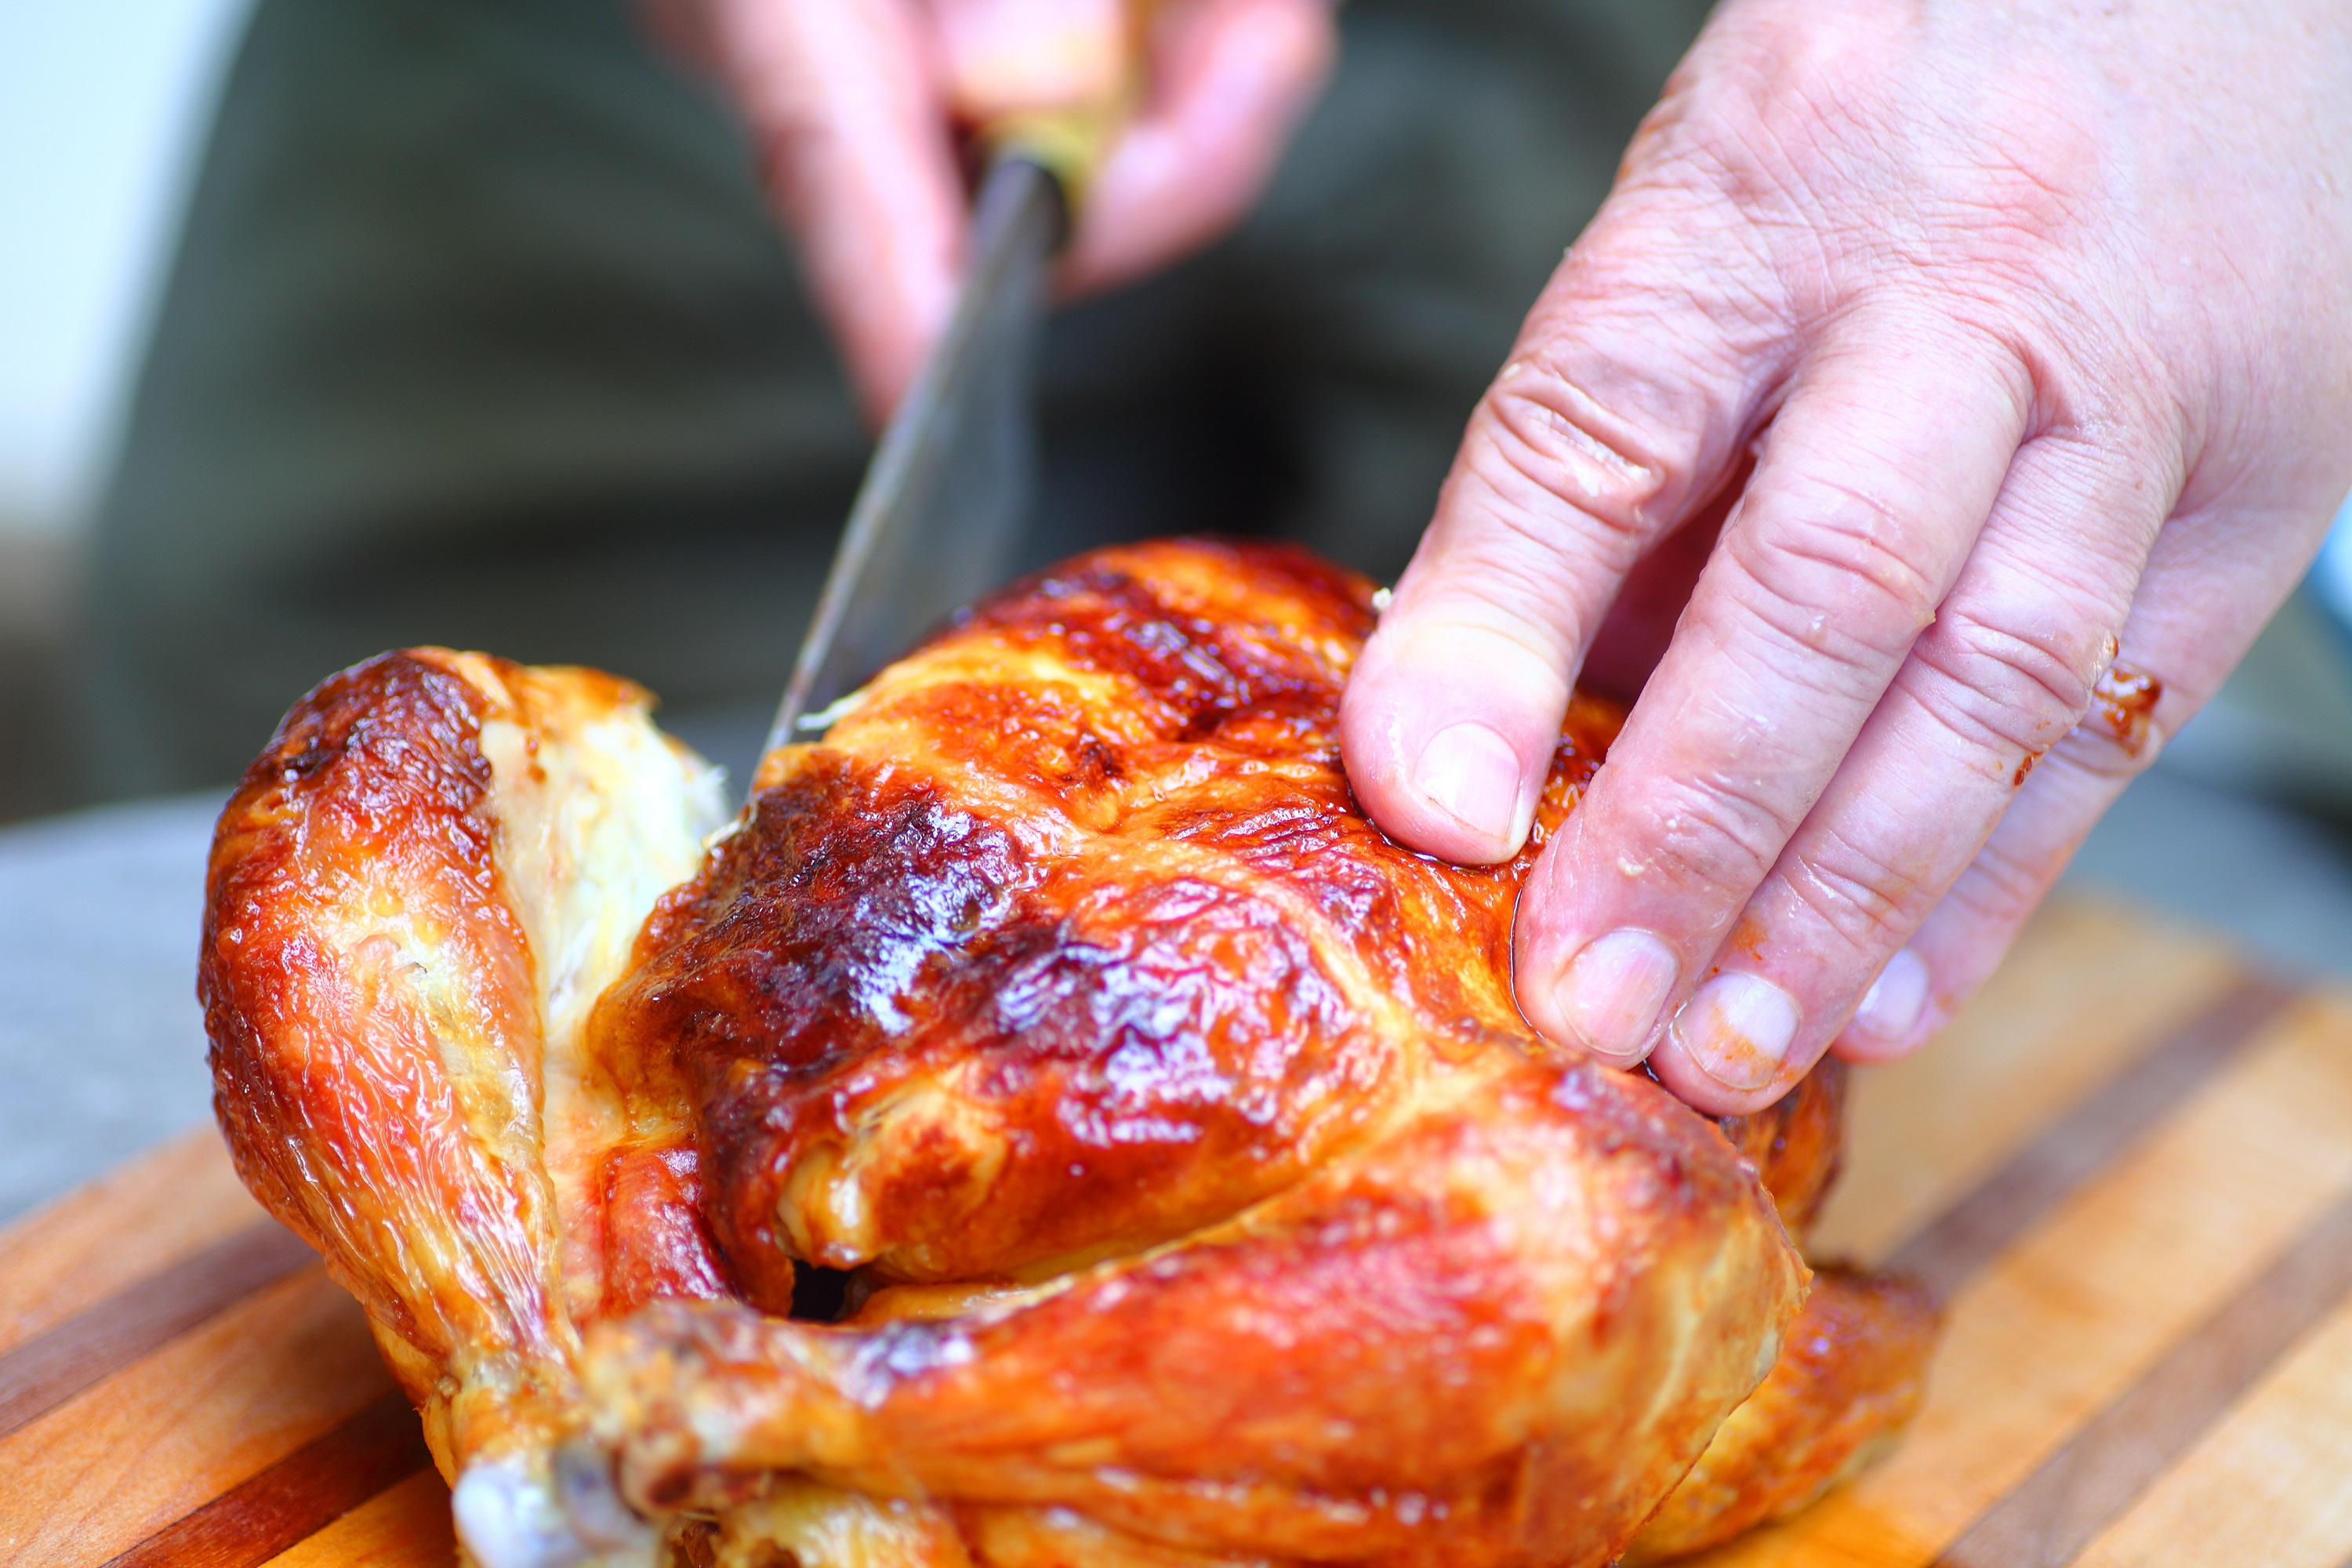 Hands Cutting Rotisserie Chicken on Wooden Cutting Block